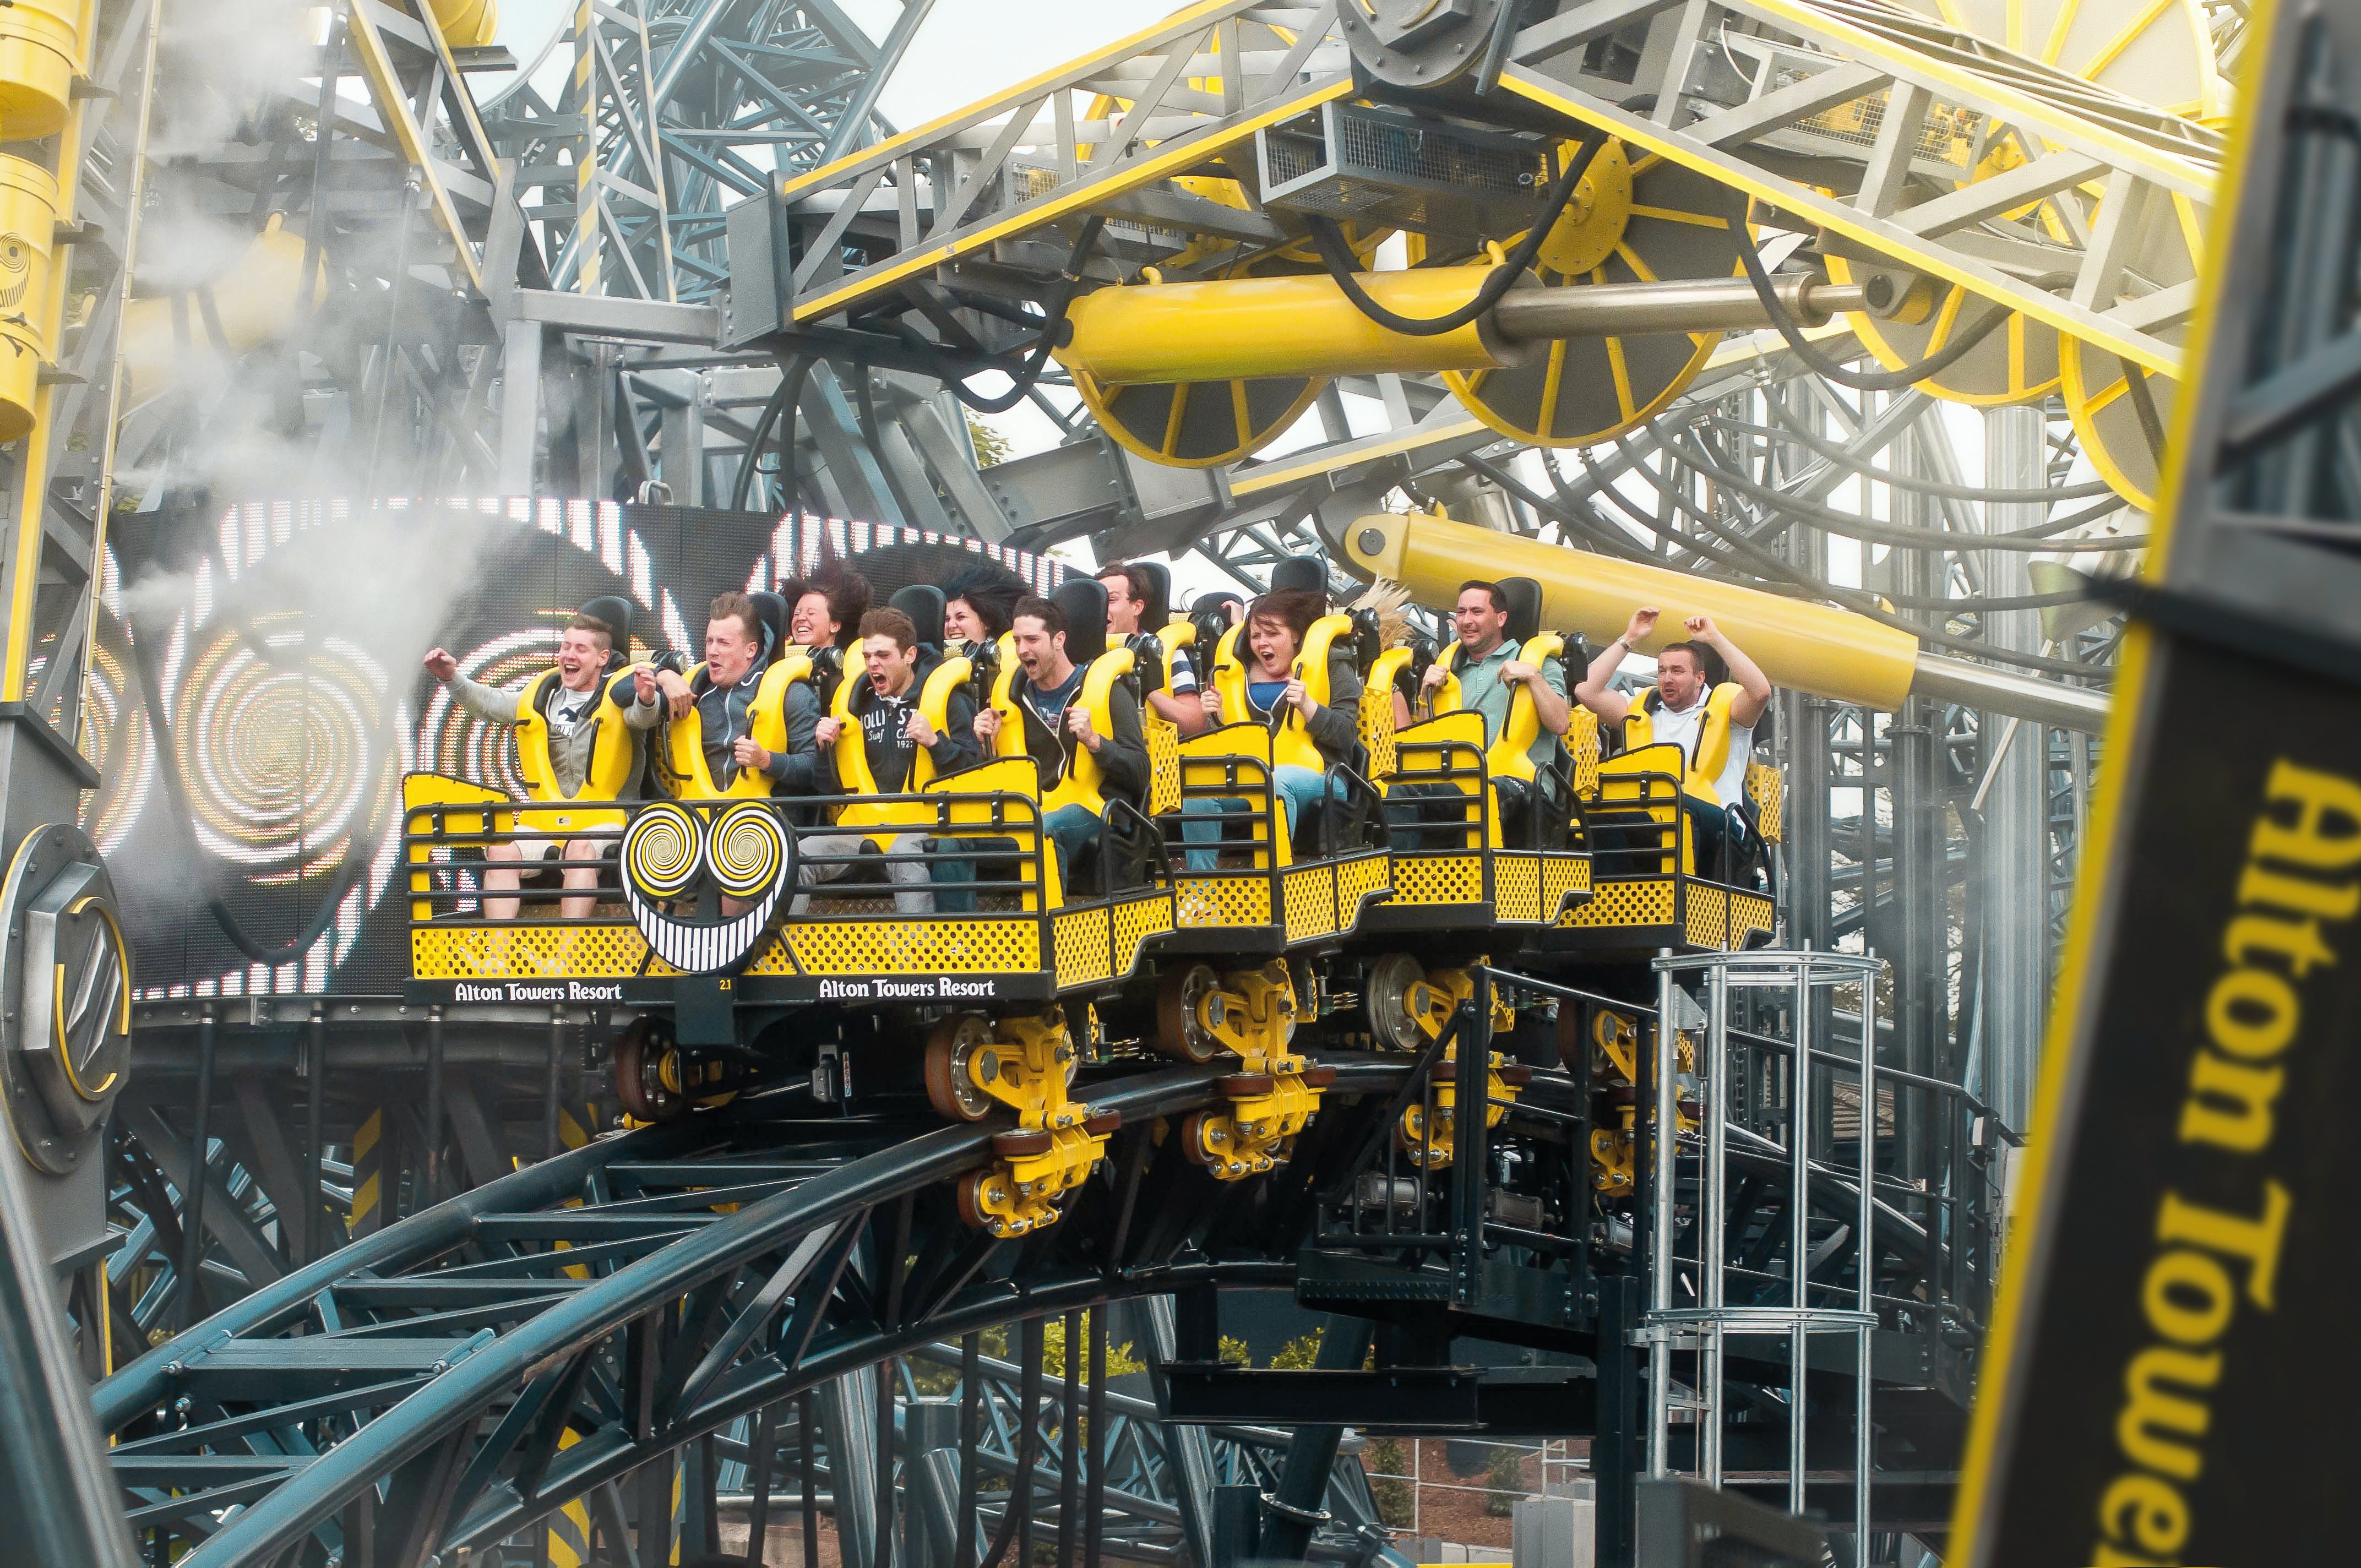 Guests on The Smiler at Alton Towers